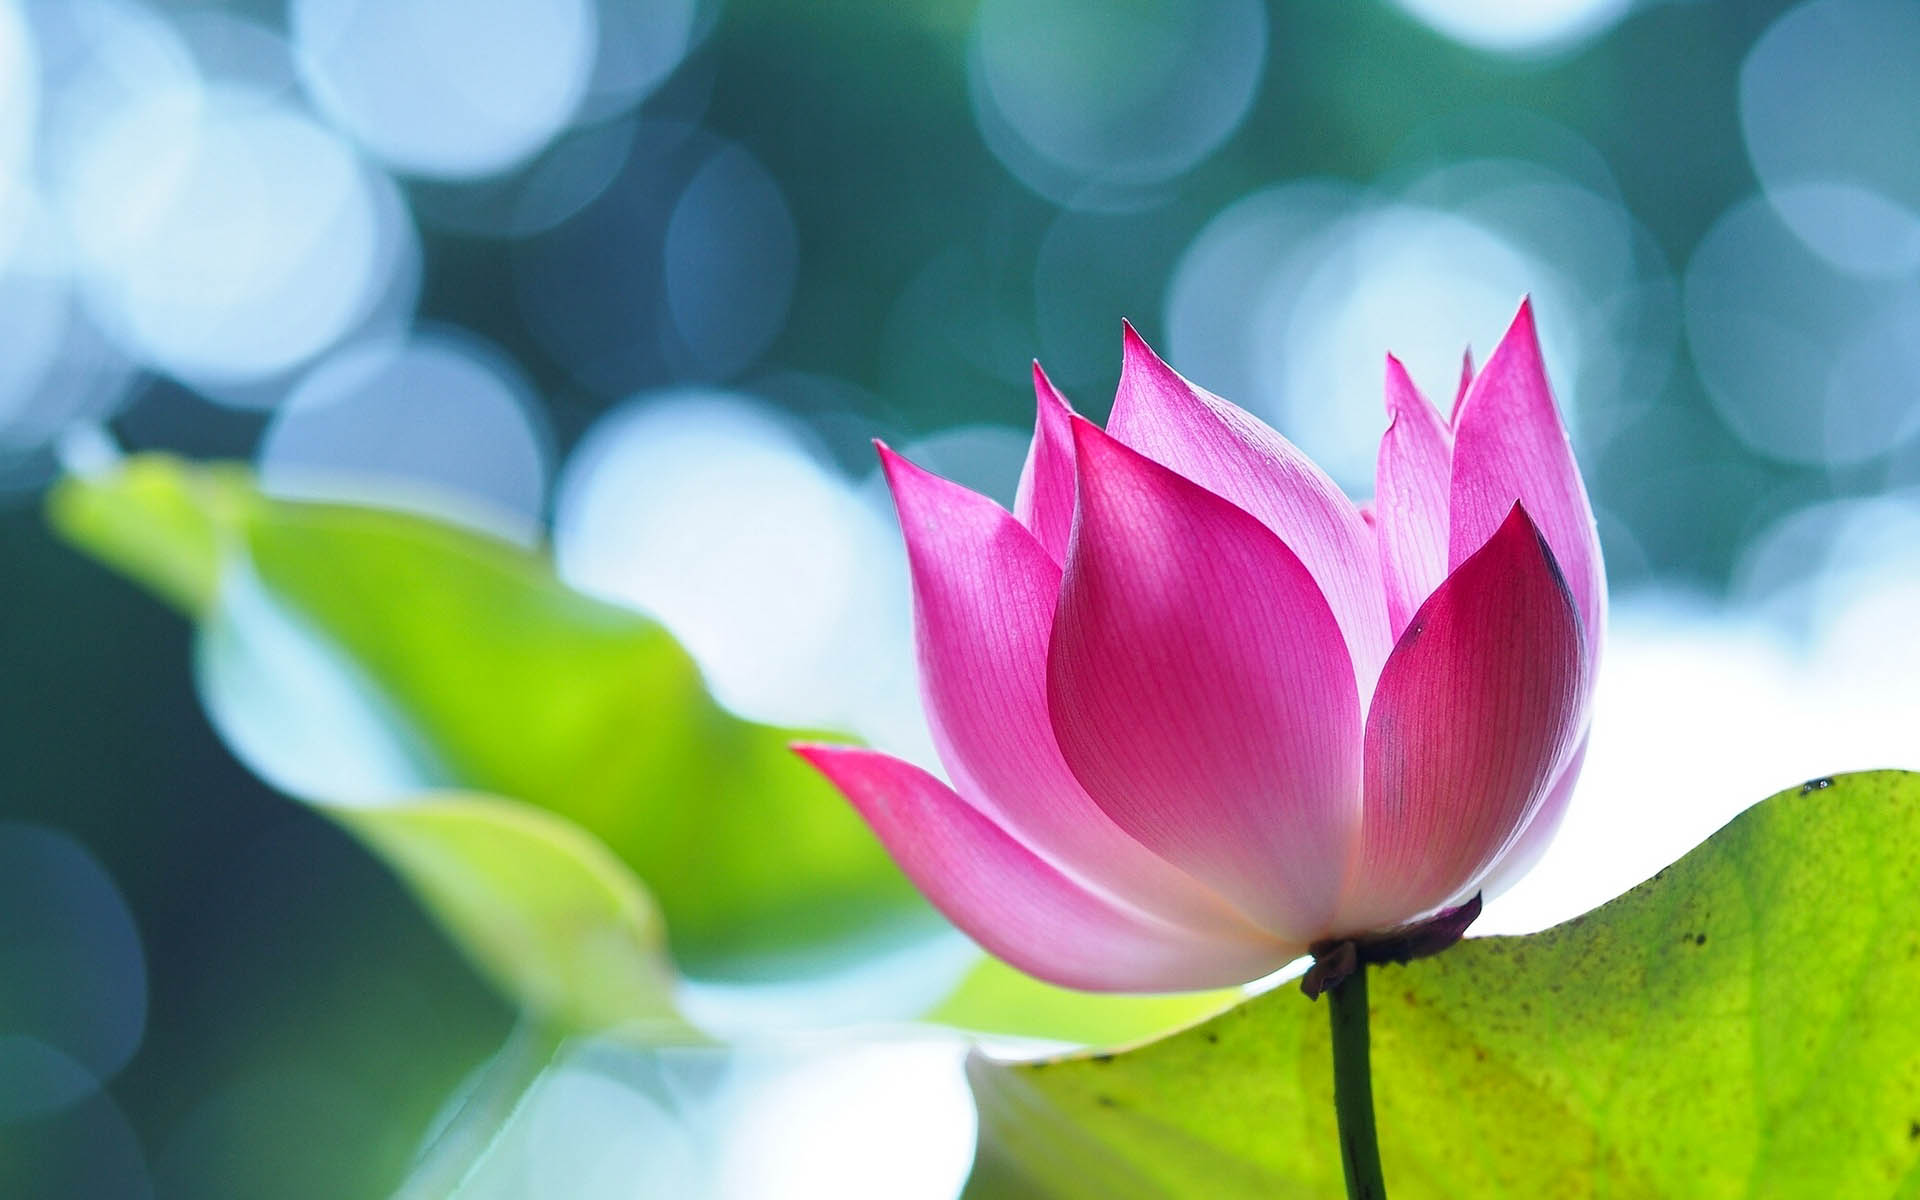 Lotus flower beautiful high quality hd wallpapers all hd wallpapers lotus 10 izmirmasajfo